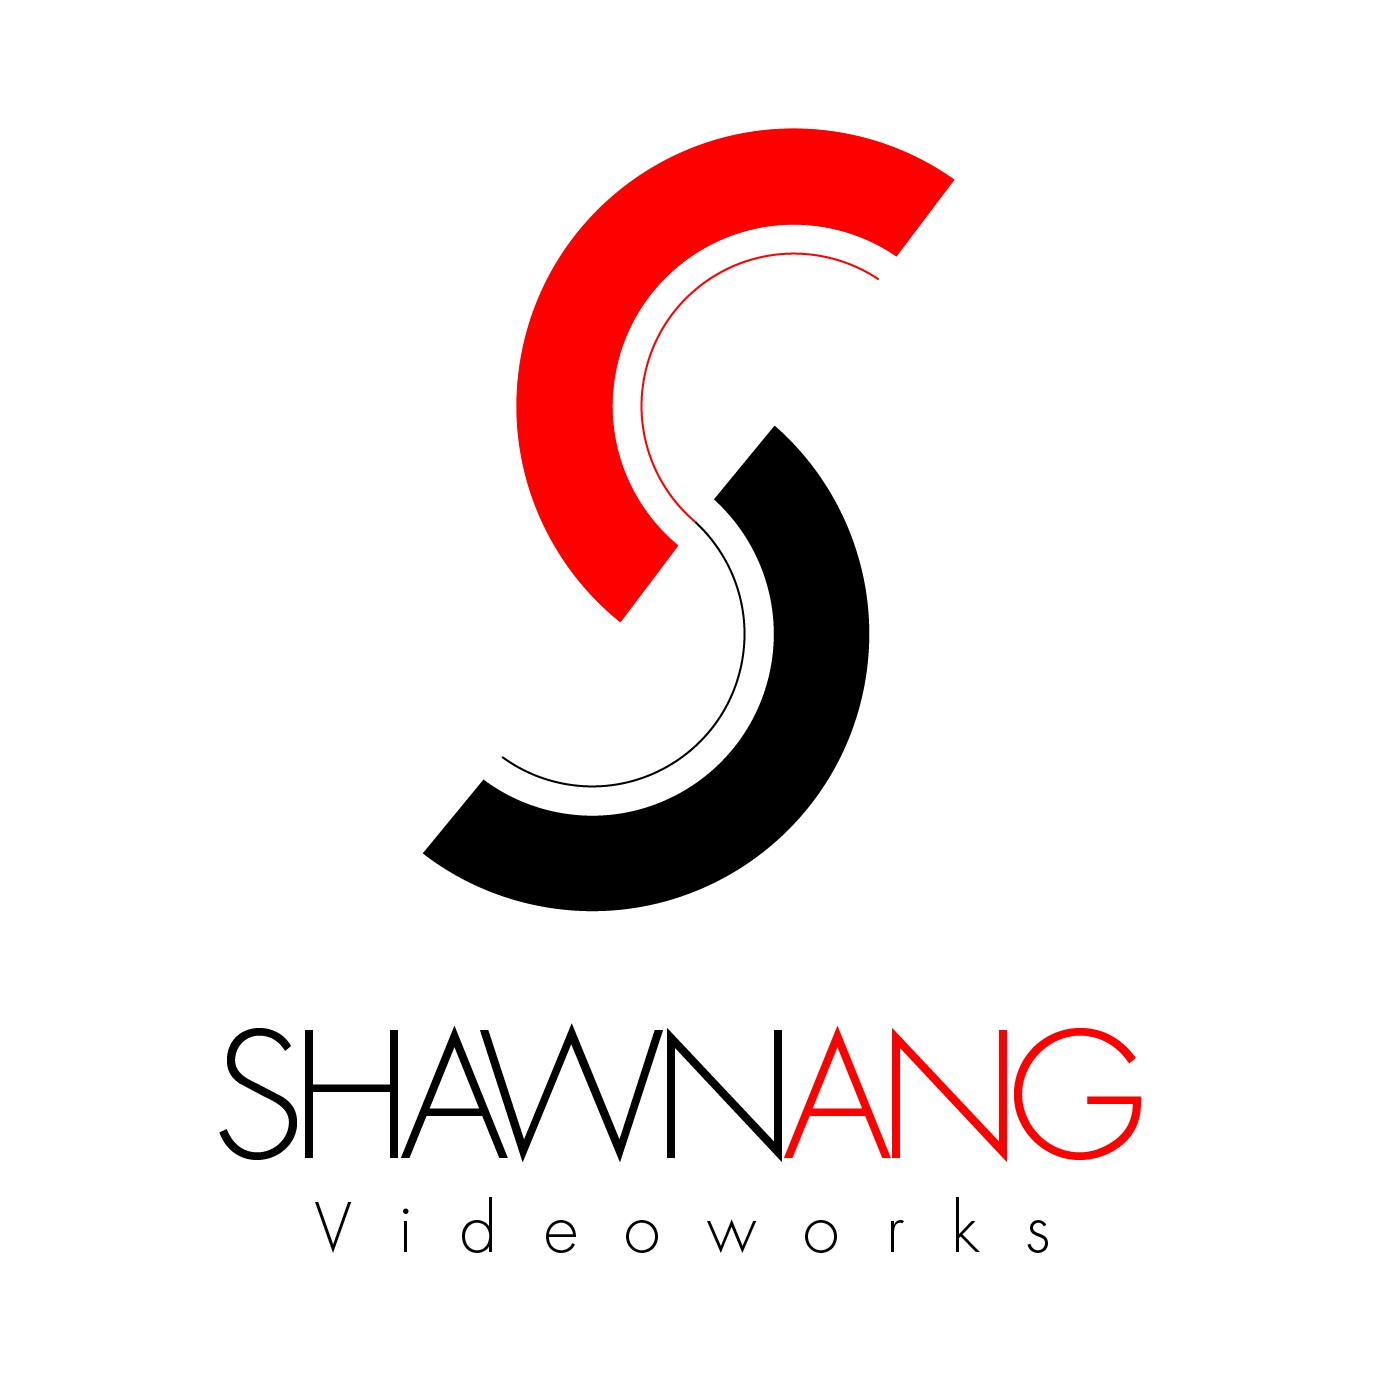 Shawn Ang Videoworks